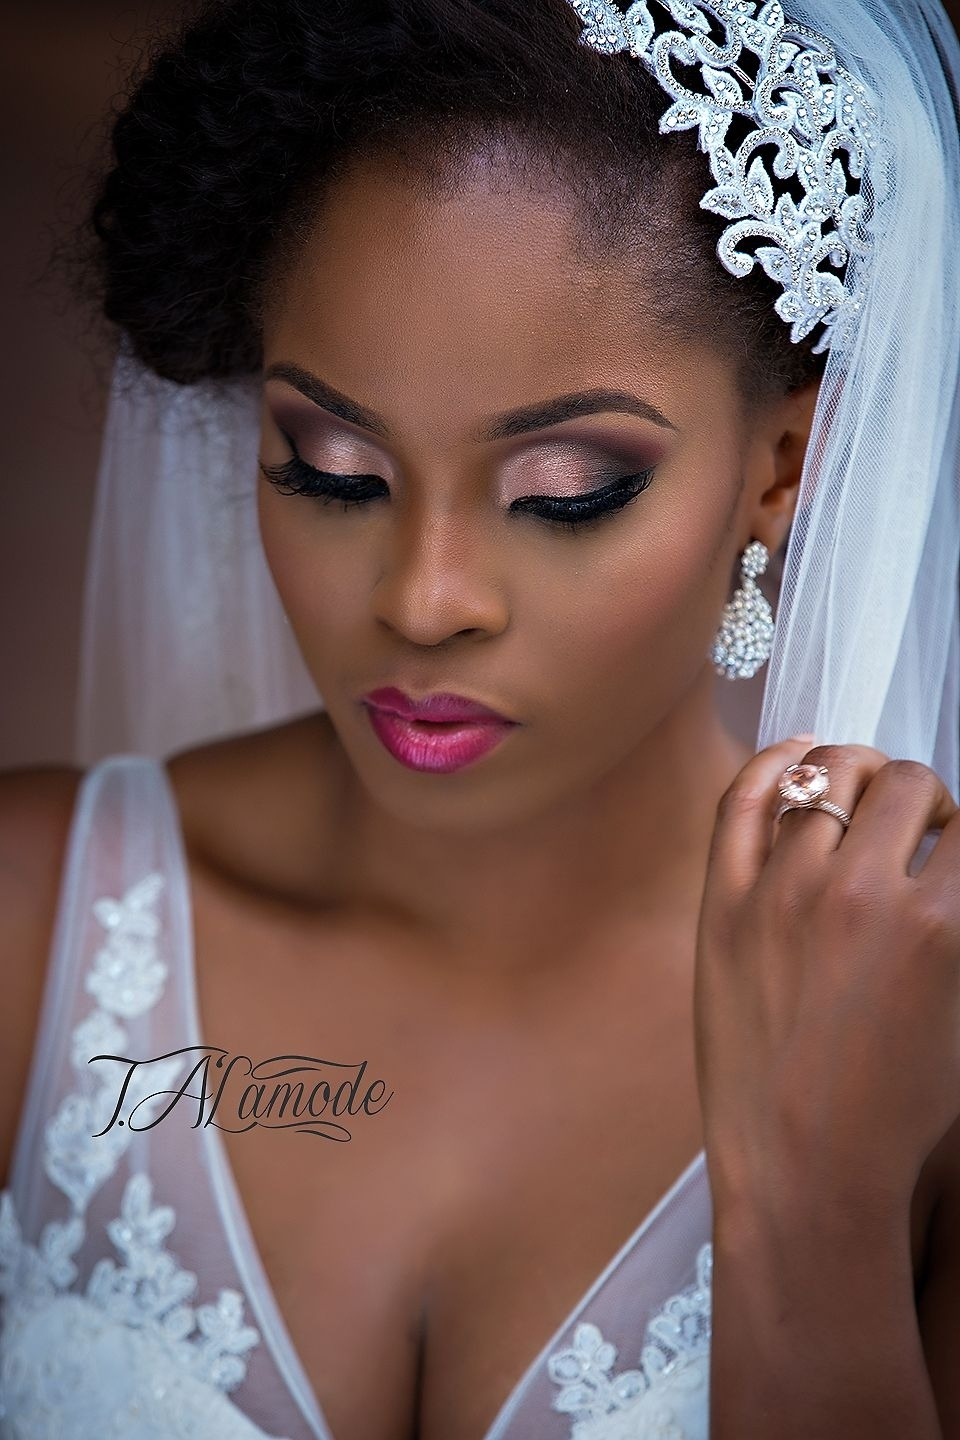 Nigerian Bridal Natural Hair And Makeup Shoot - Black Bride pertaining to Nigerian Bridal Makeup Pictures